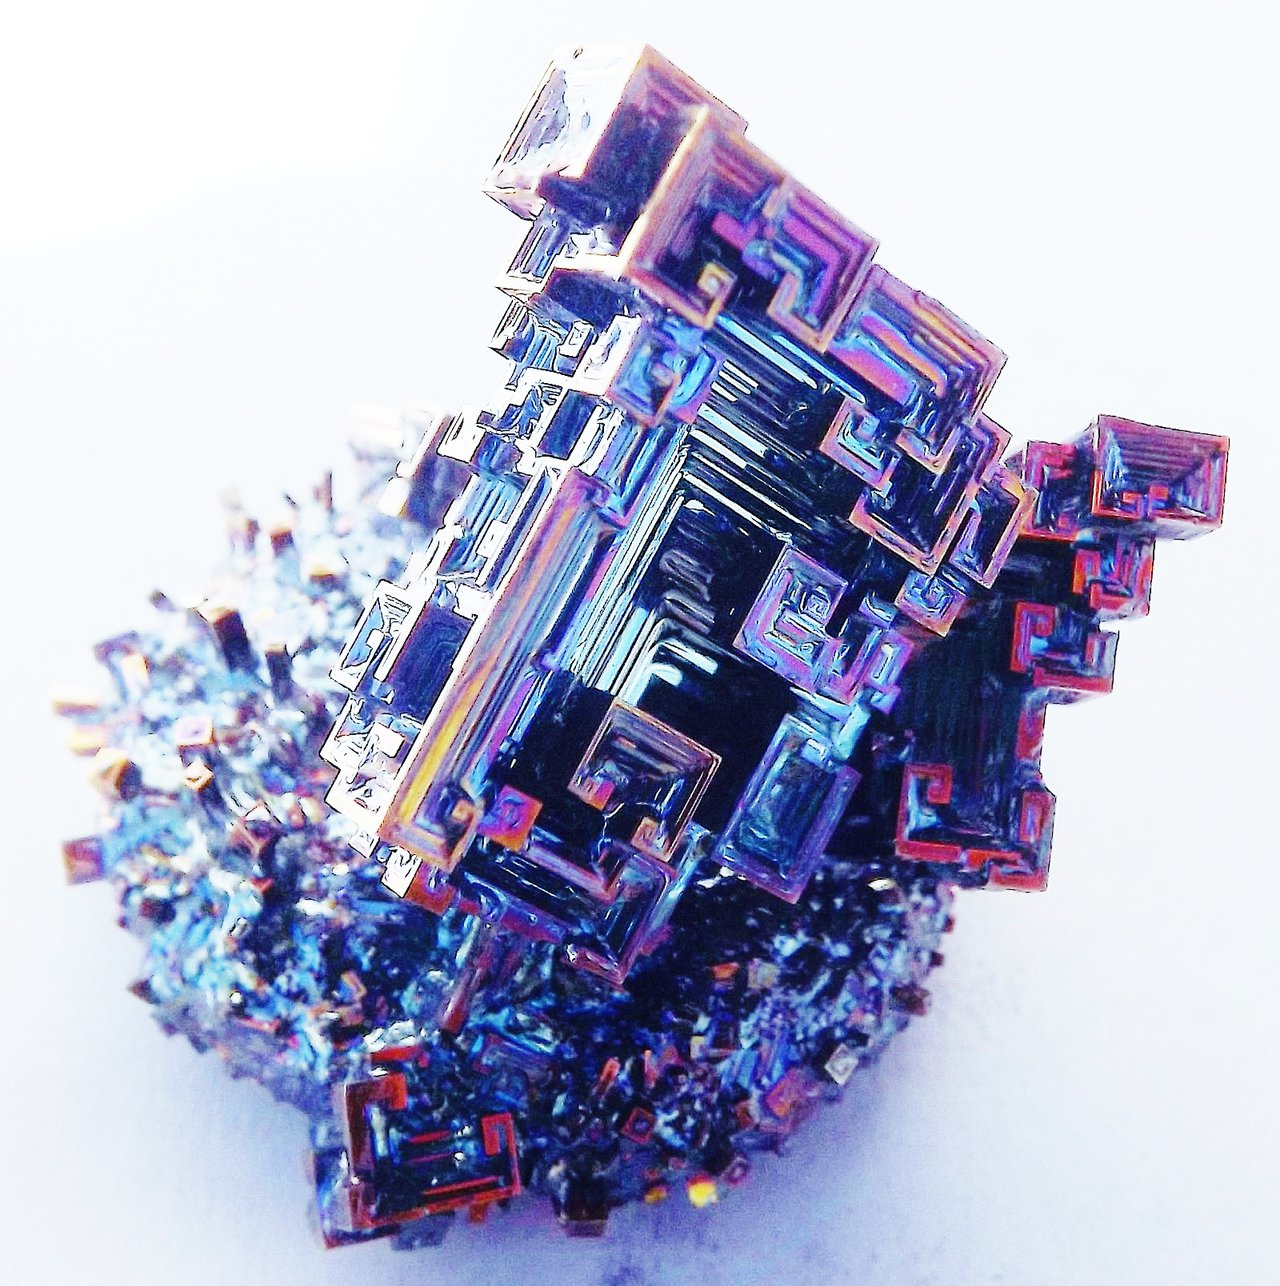 Bismuth Crystals Lazyop